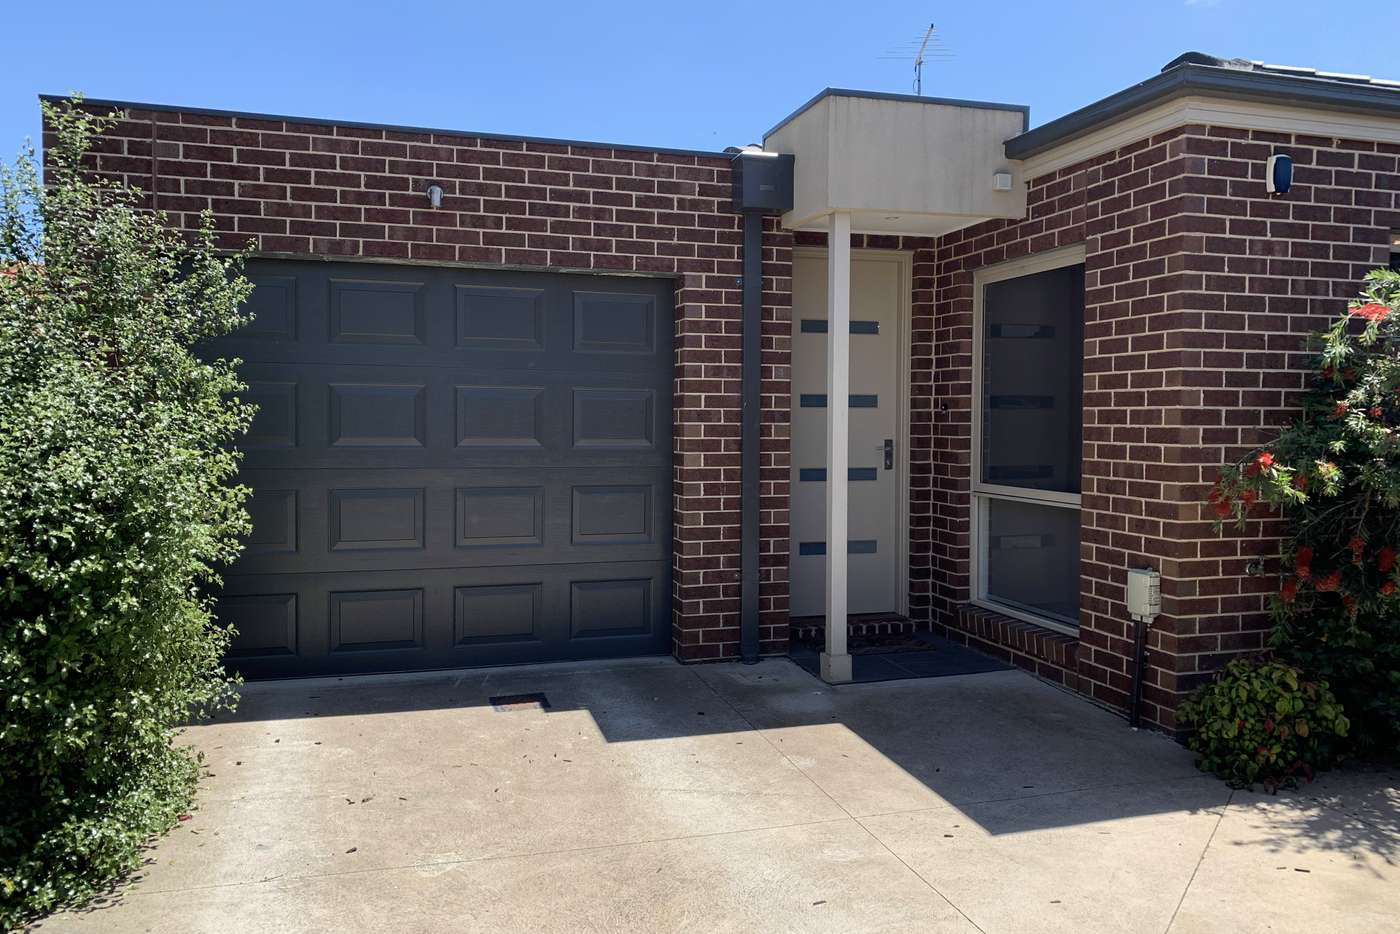 Main view of Homely unit listing, 4/27 Clydesdale Road, Airport West VIC 3042